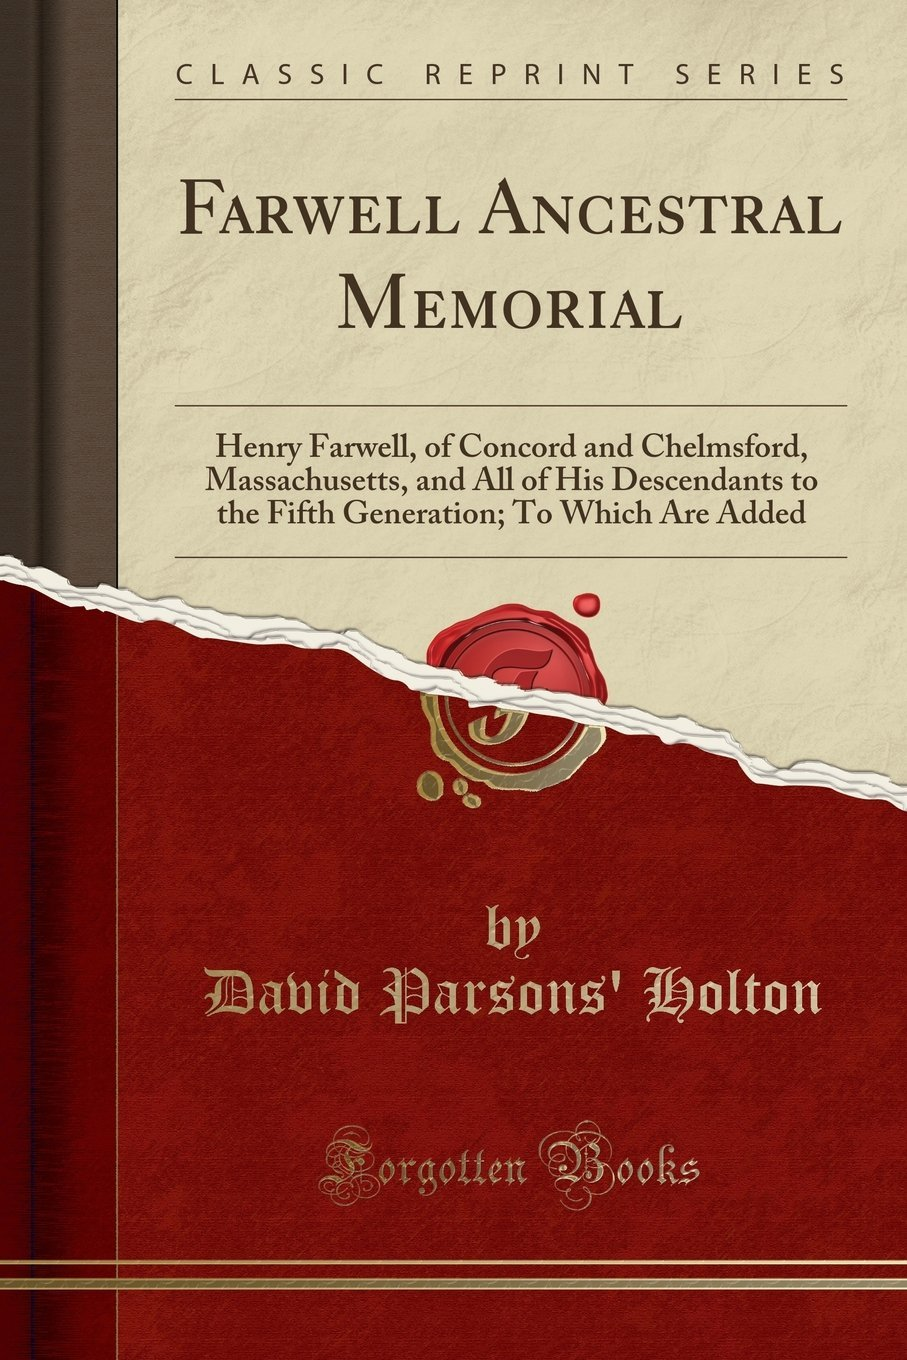 Farwell Ancestral Memorial: Henry Farwell, of Concord and Chelmsford, Massachusetts, and All of His Descendants to the Fifth Generation; To Which Are Added (Classic Reprint) ebook